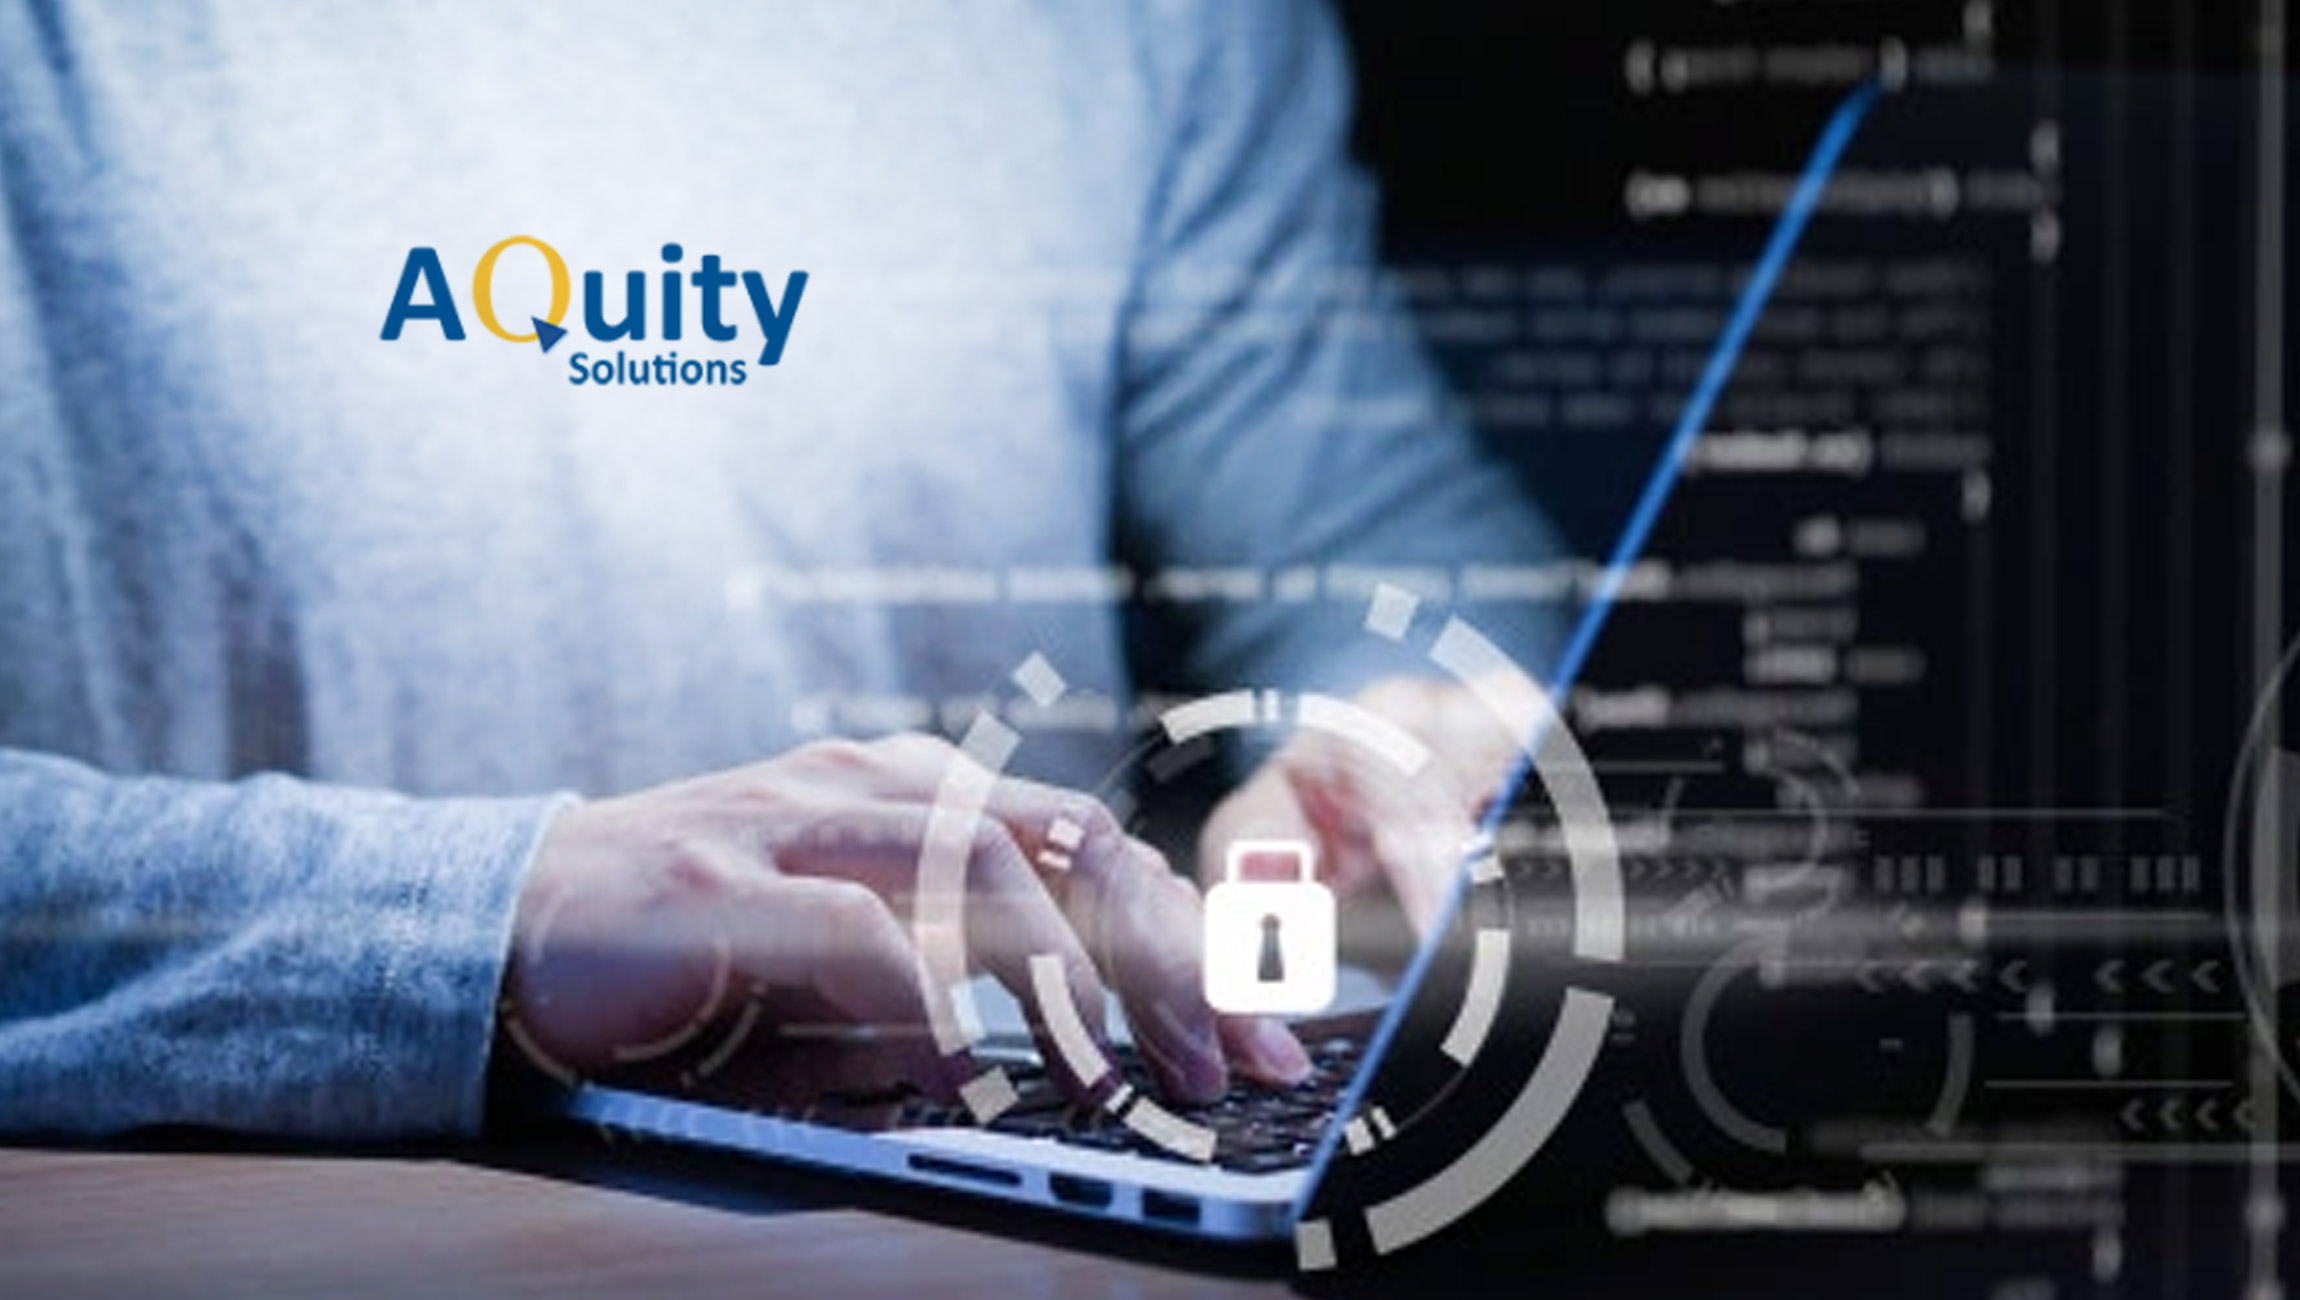 AQuity-Solutions-Achieves-SOC-2®-Type-2-Security-Certification